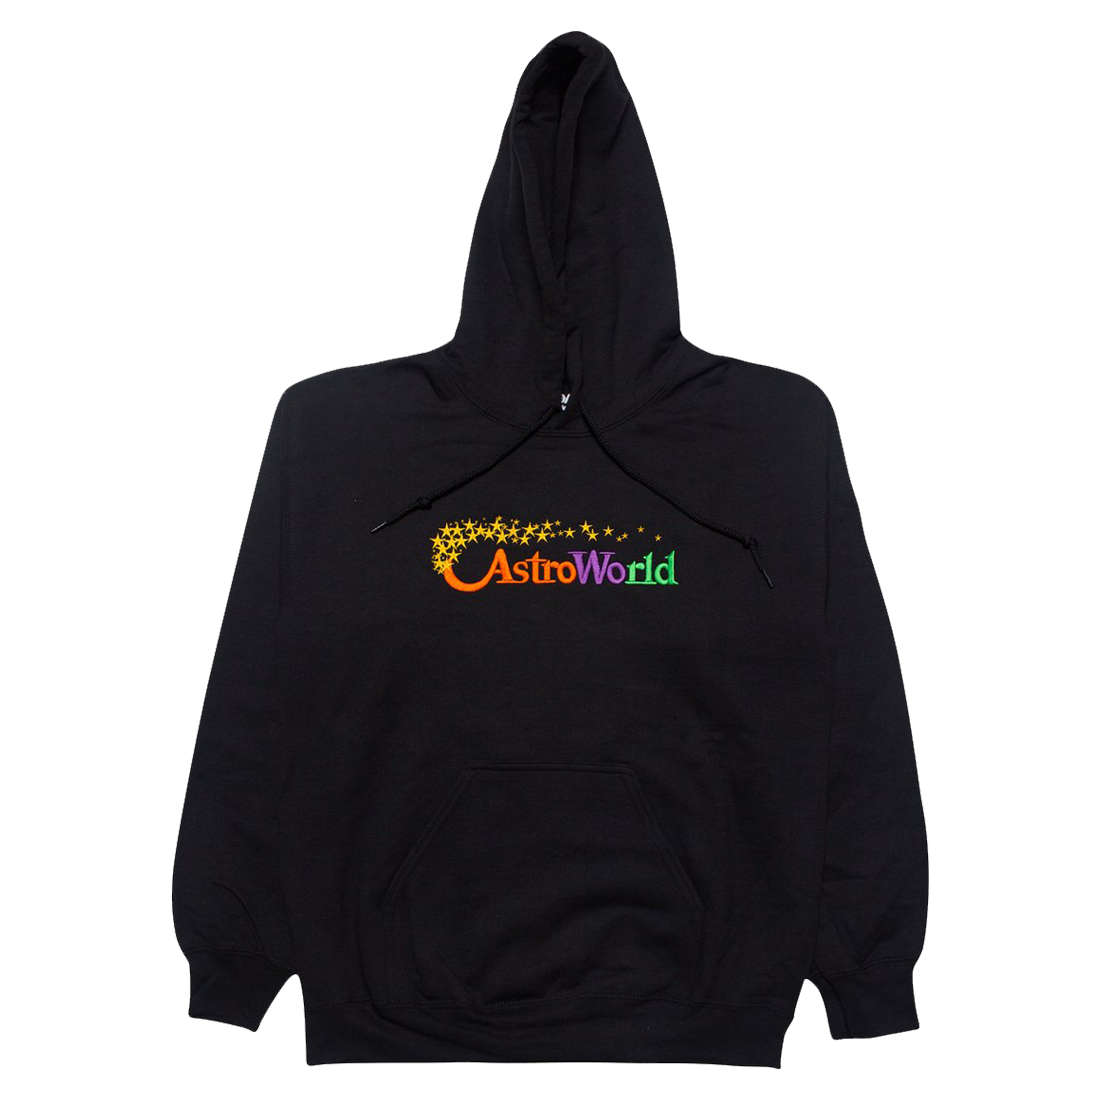 Travis Scott AstroWorld Black Hoodie